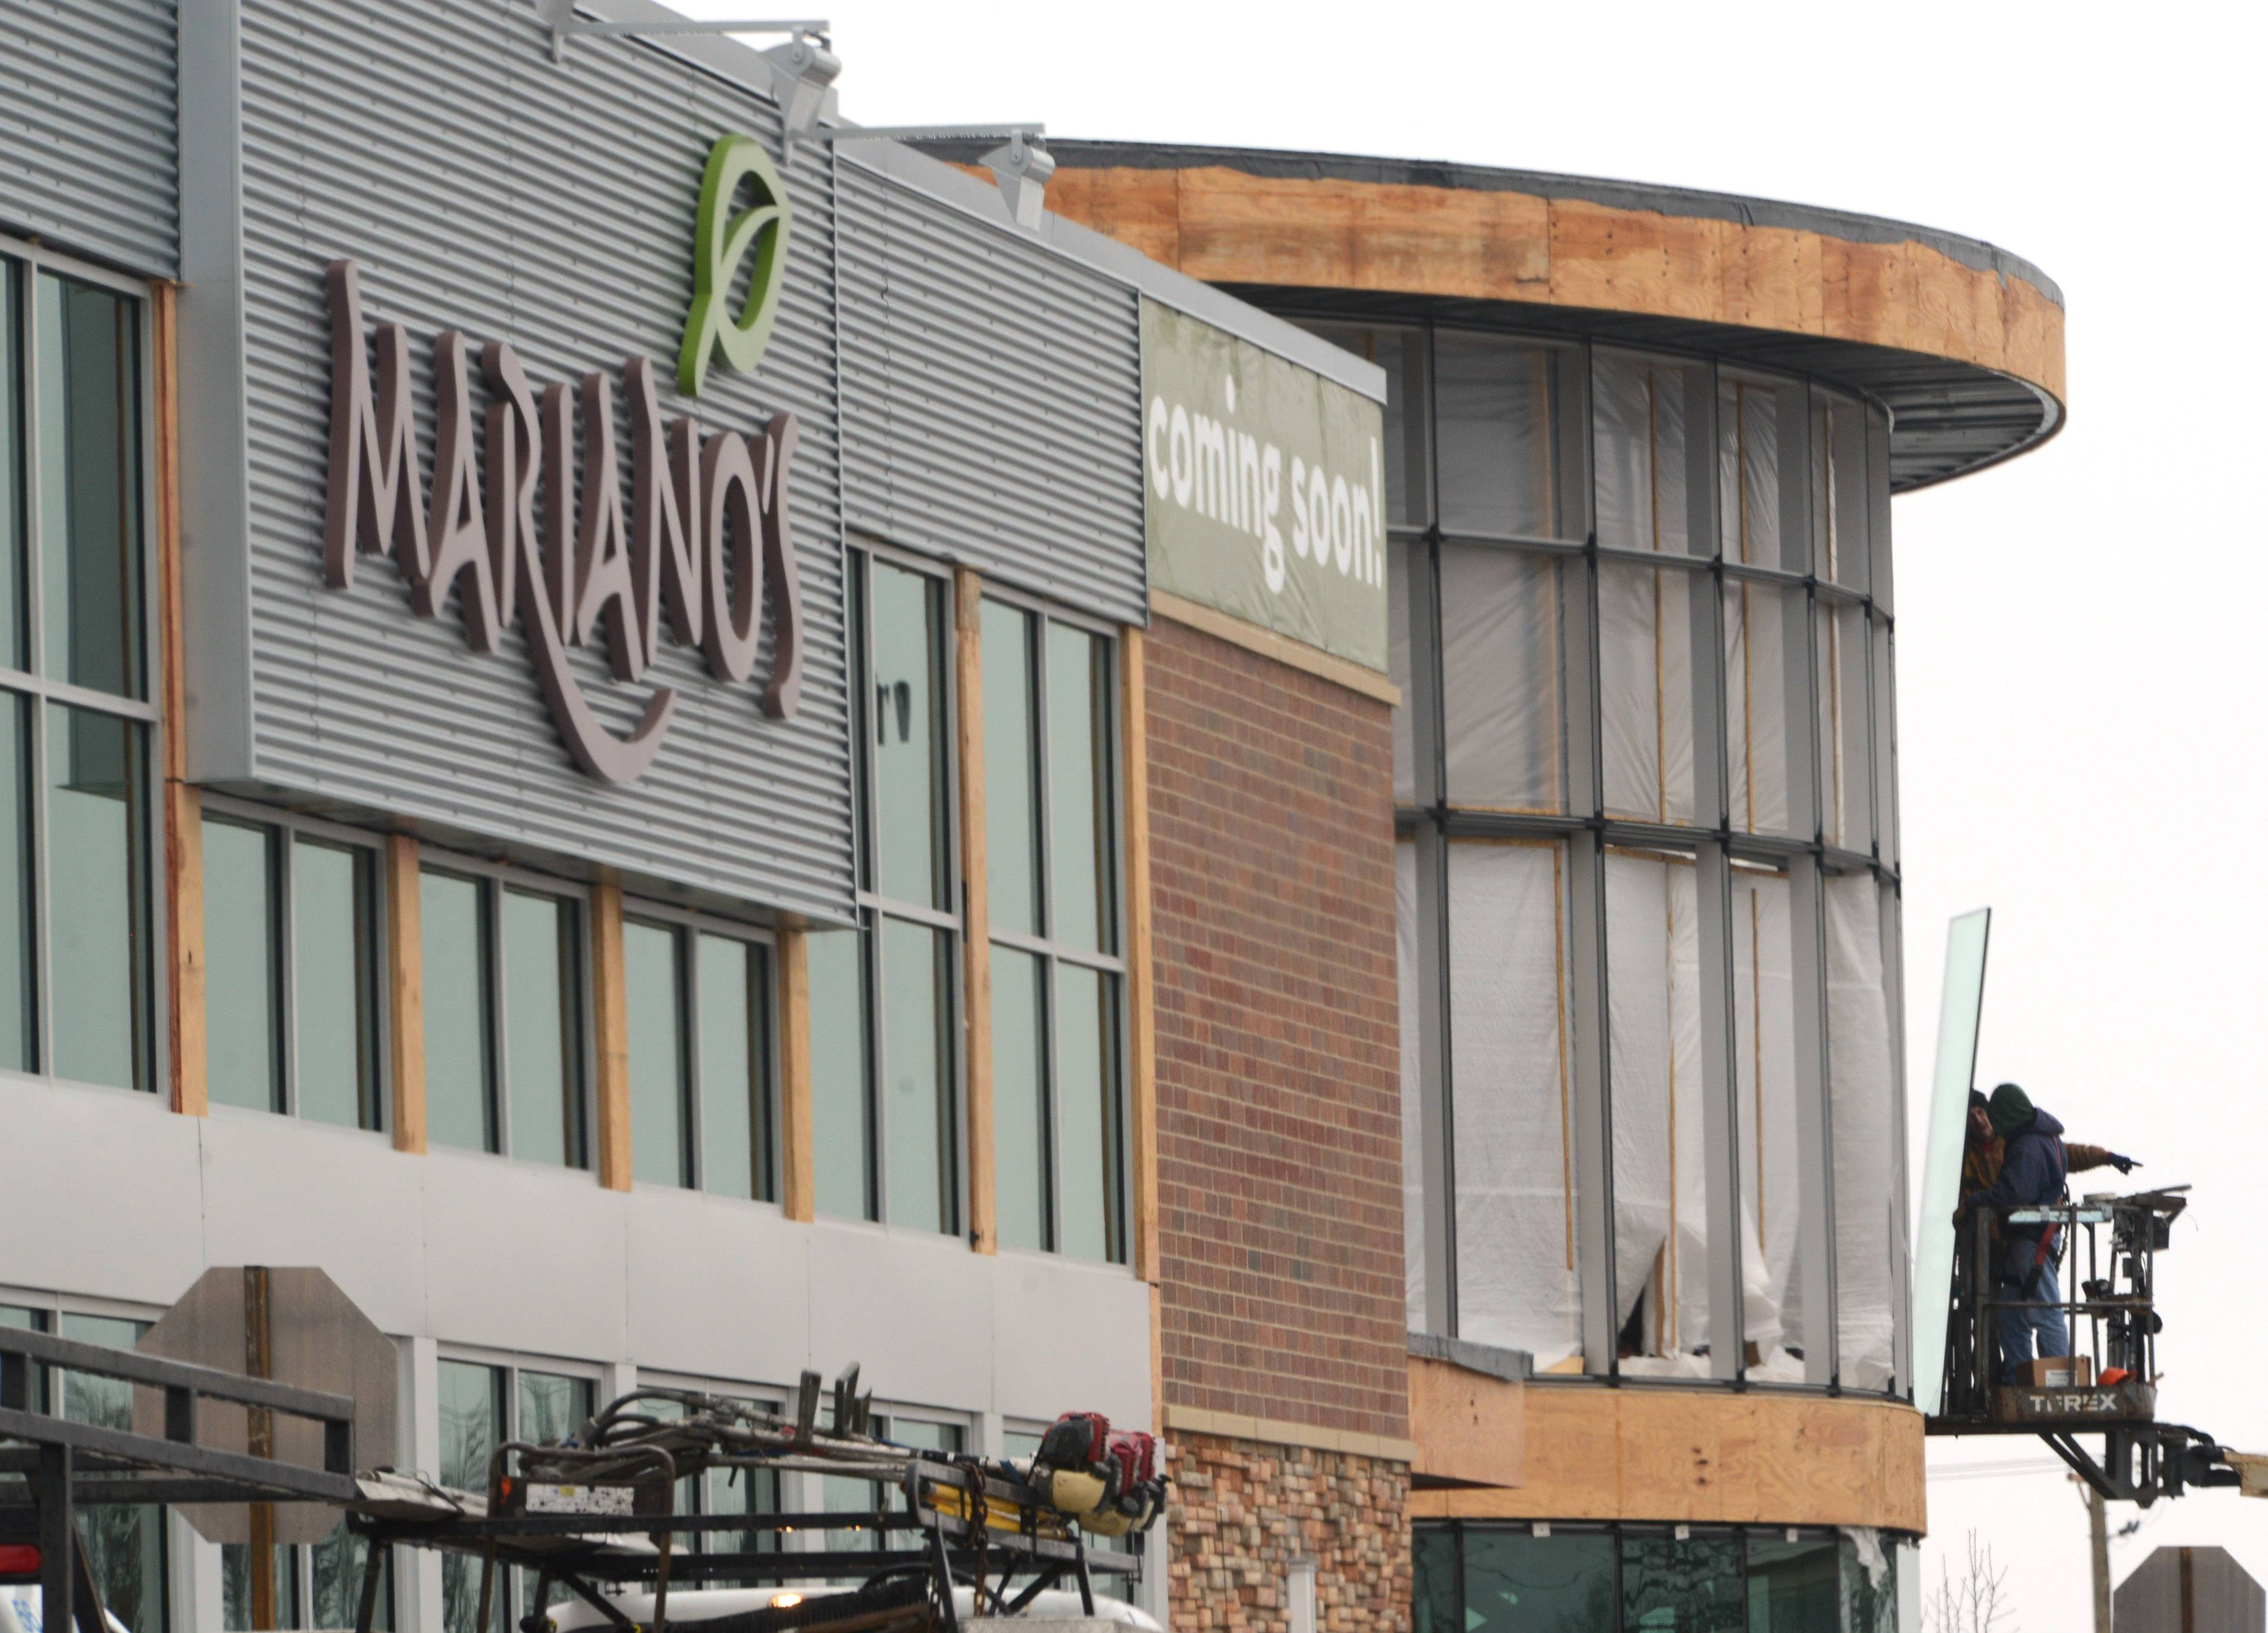 Workers install windows near the front entrance of the newest Mariano's that opened recently in Lake Zurich on Route 22.